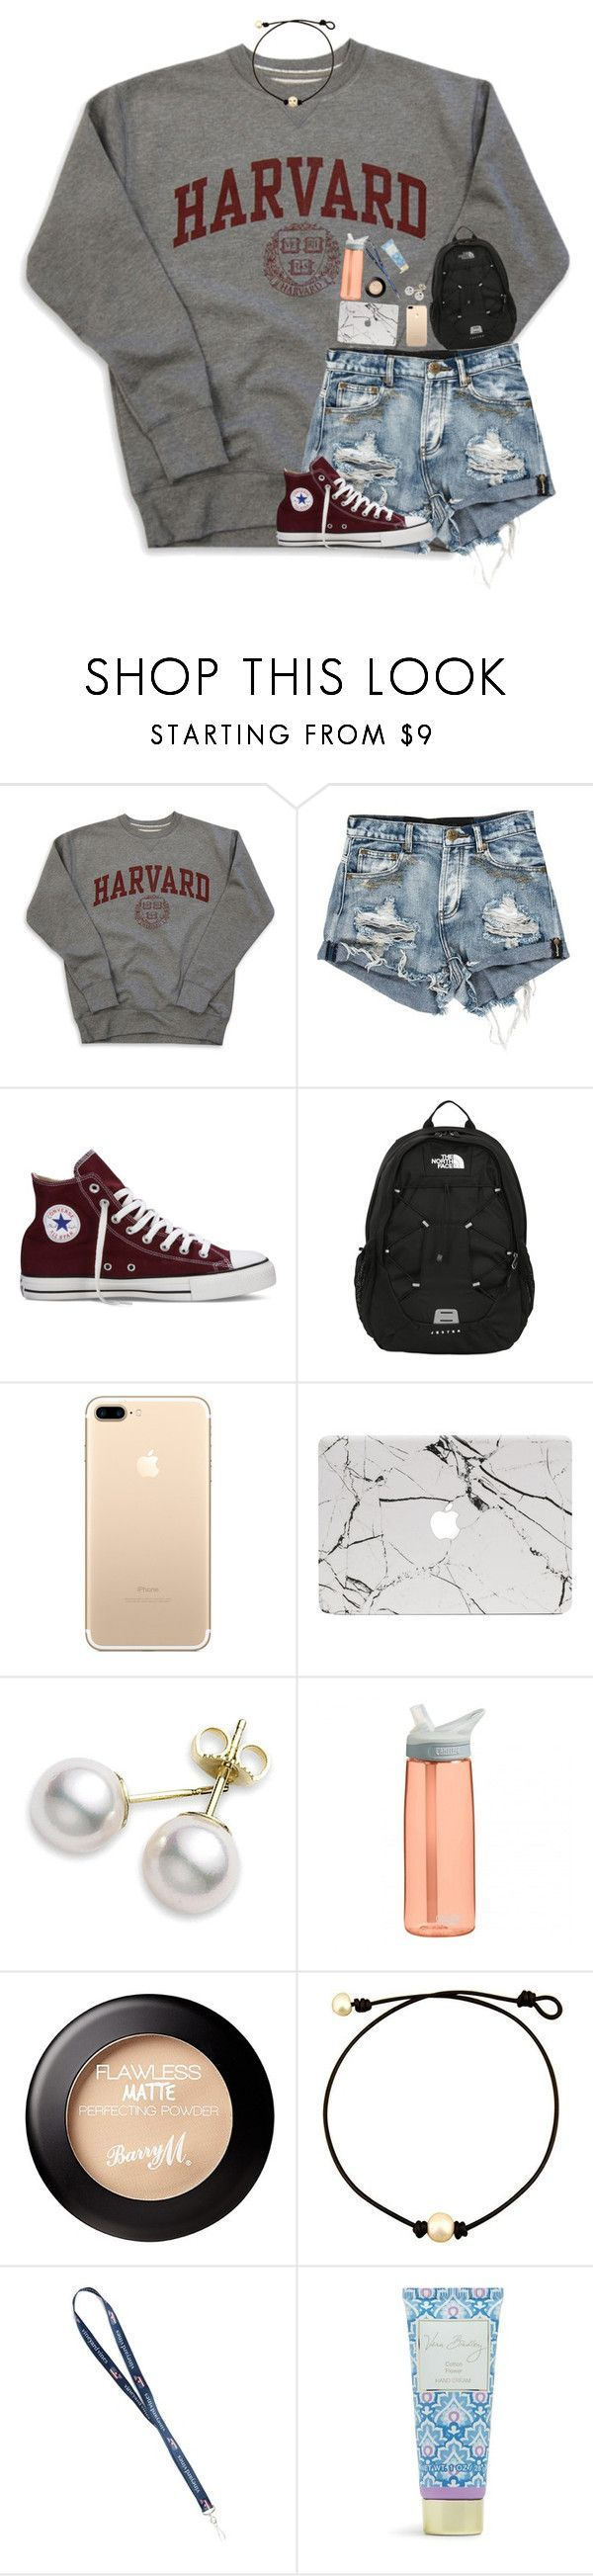 """french exam tomorrow"" by harknessl ❤ liked on Polyvore featuring Converse, The North Face, Mikimoto, CamelBak, Vera Bradley and preppybylauren"